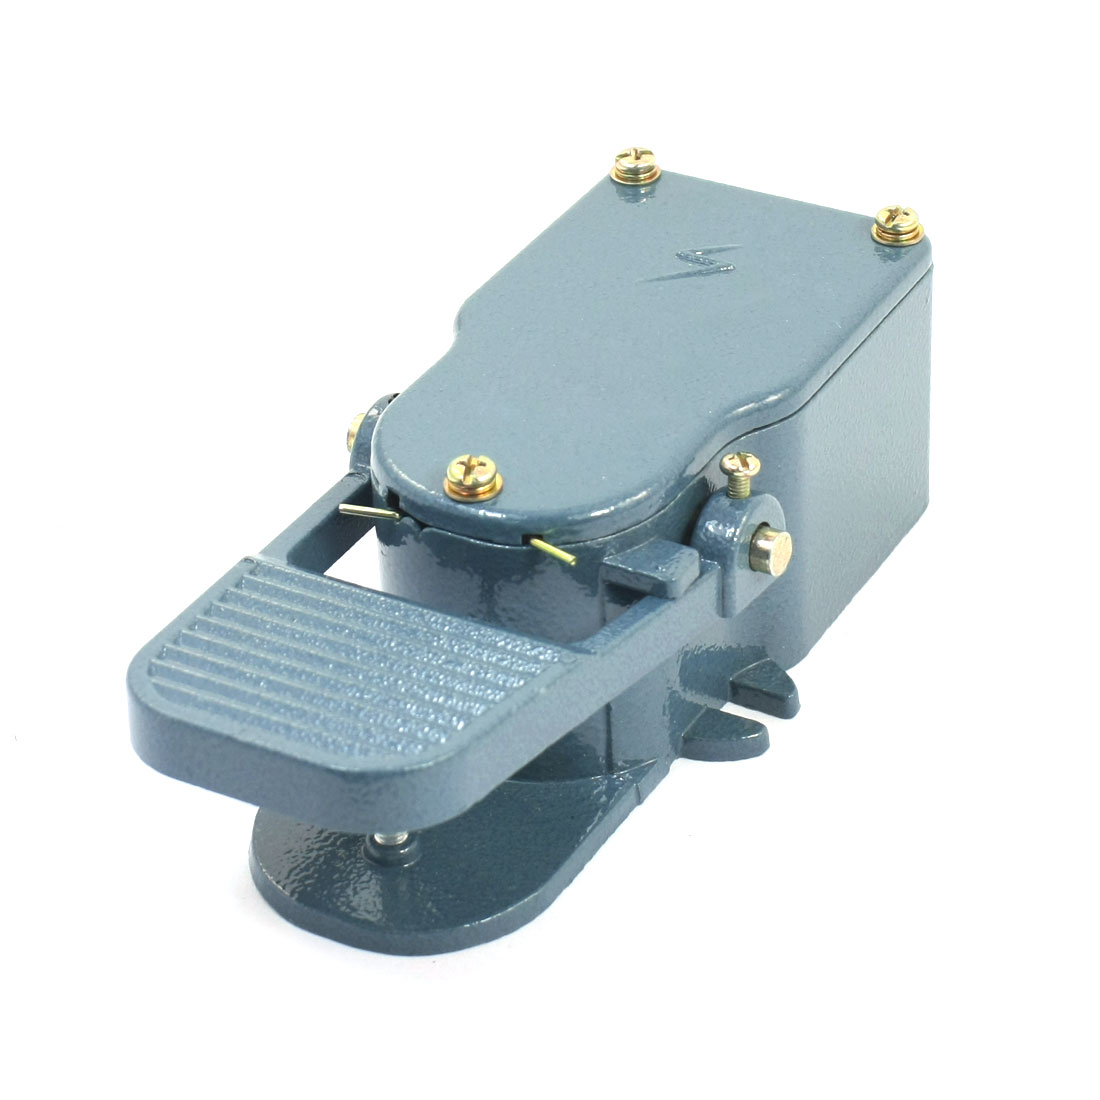 380V 15A SPDT 1NO 1NC Momentary Action Handsfree Nonslip Metal Case Industrial Electric Engine Foot Pedal Switch